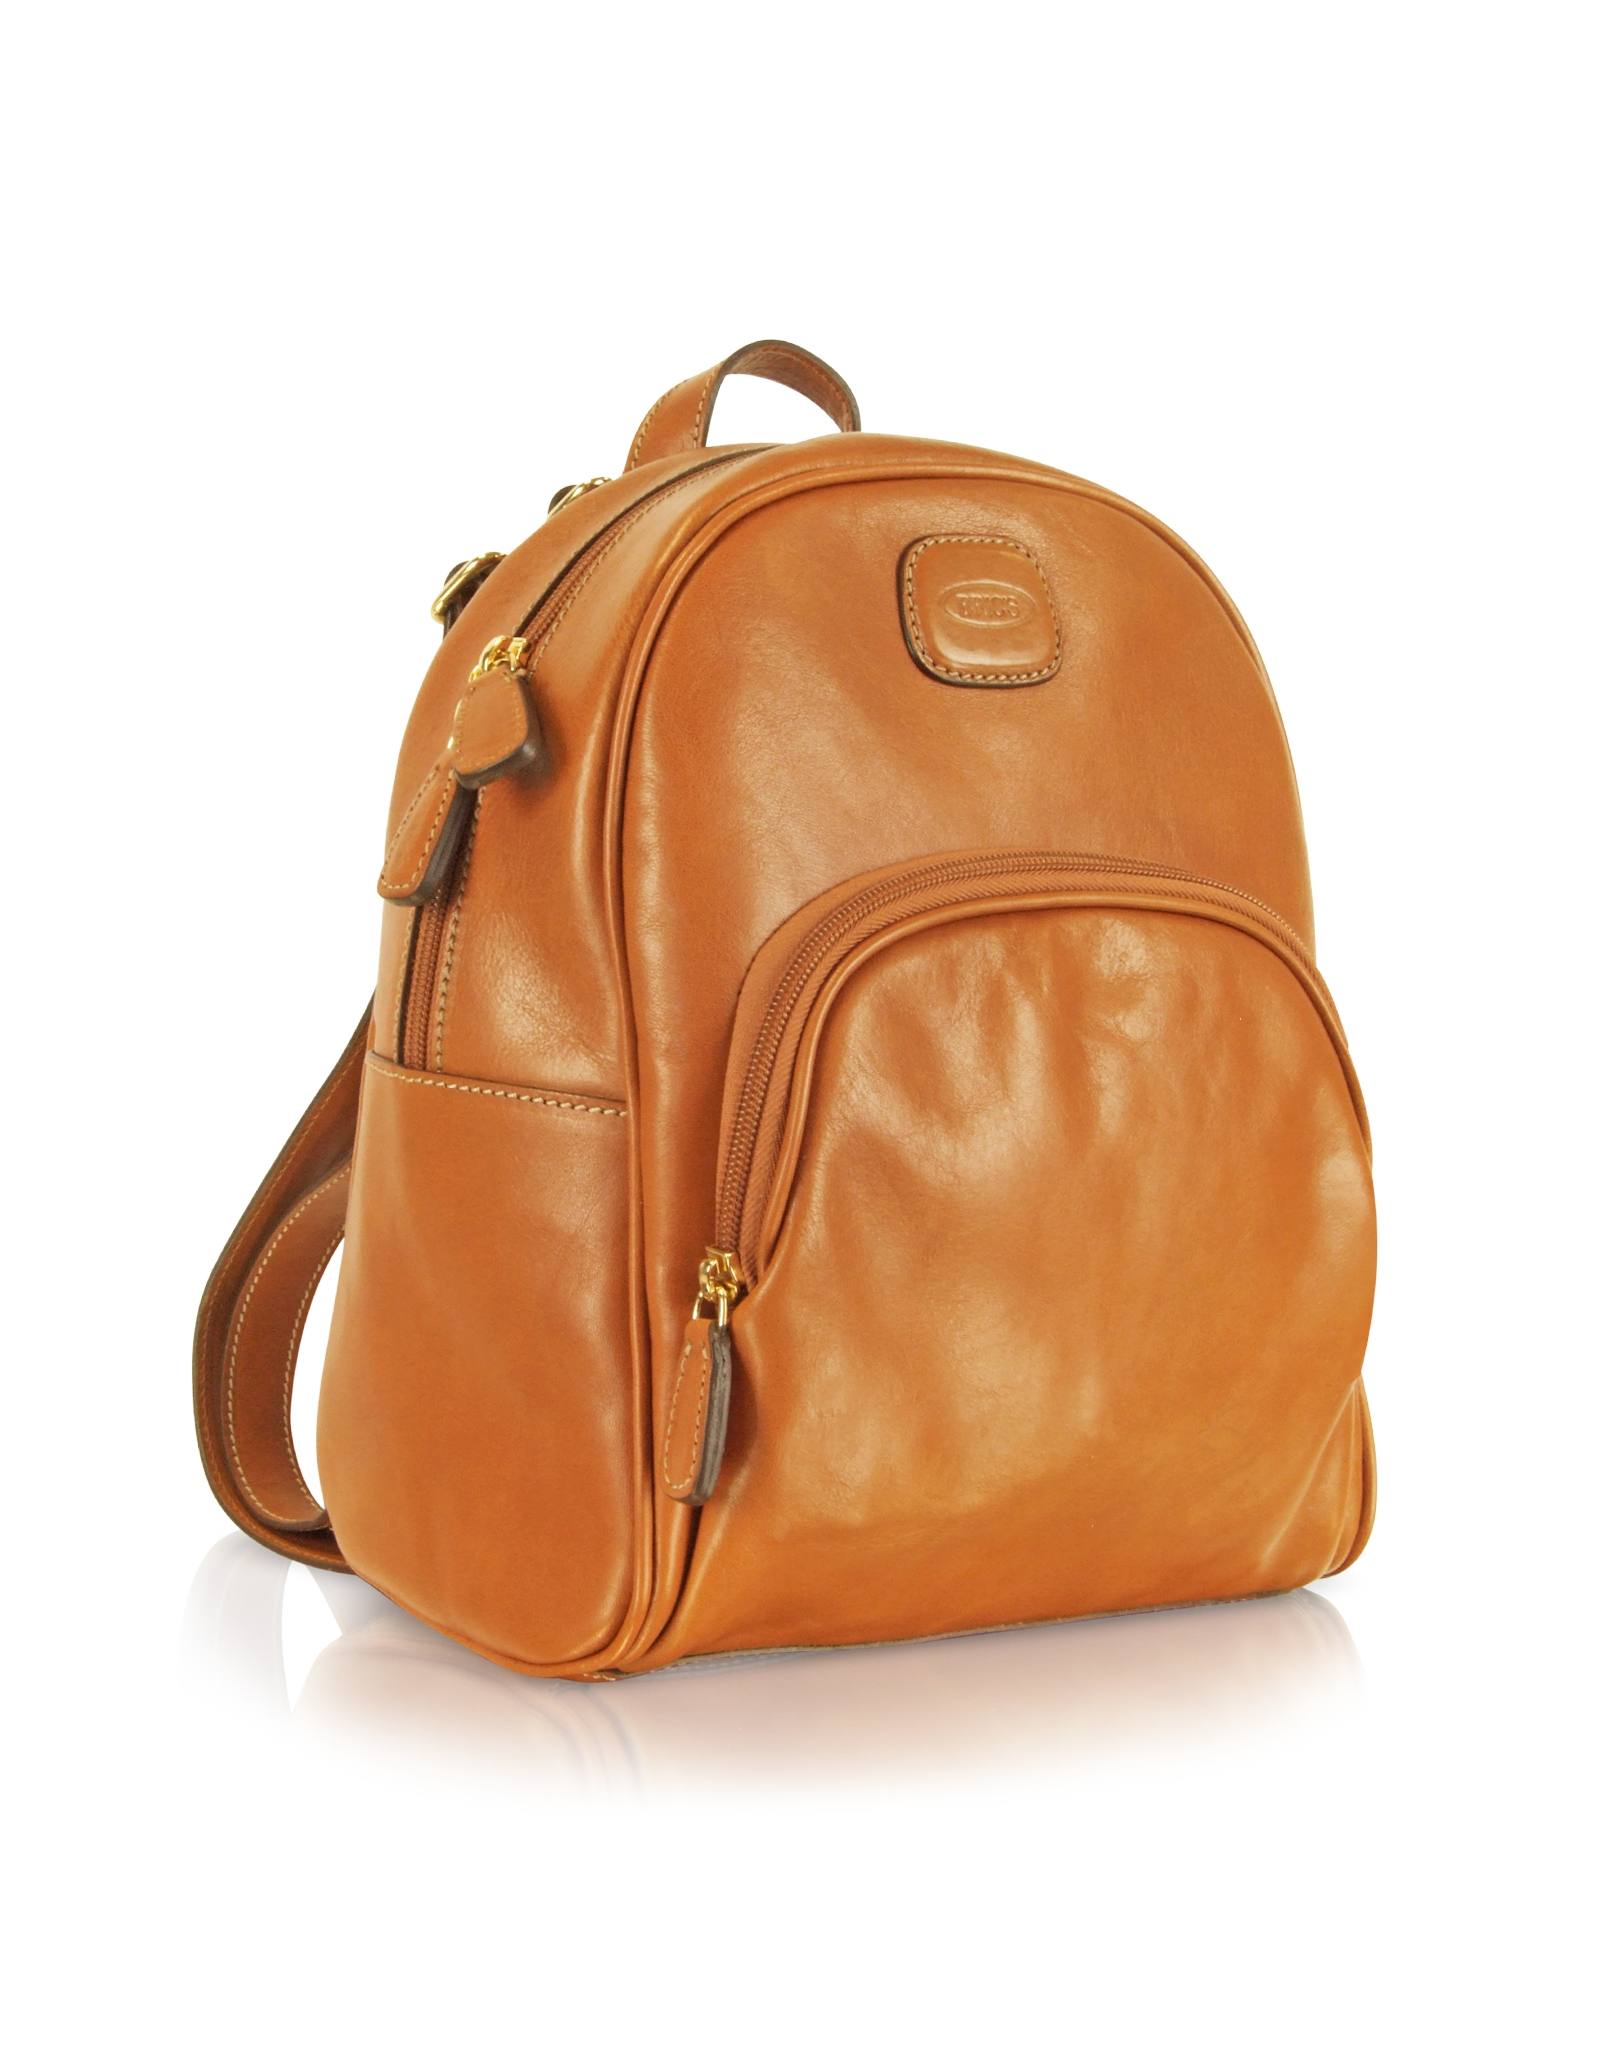 Lyst - Bric's Life Leather - Genuine Leather Backpack in Brown